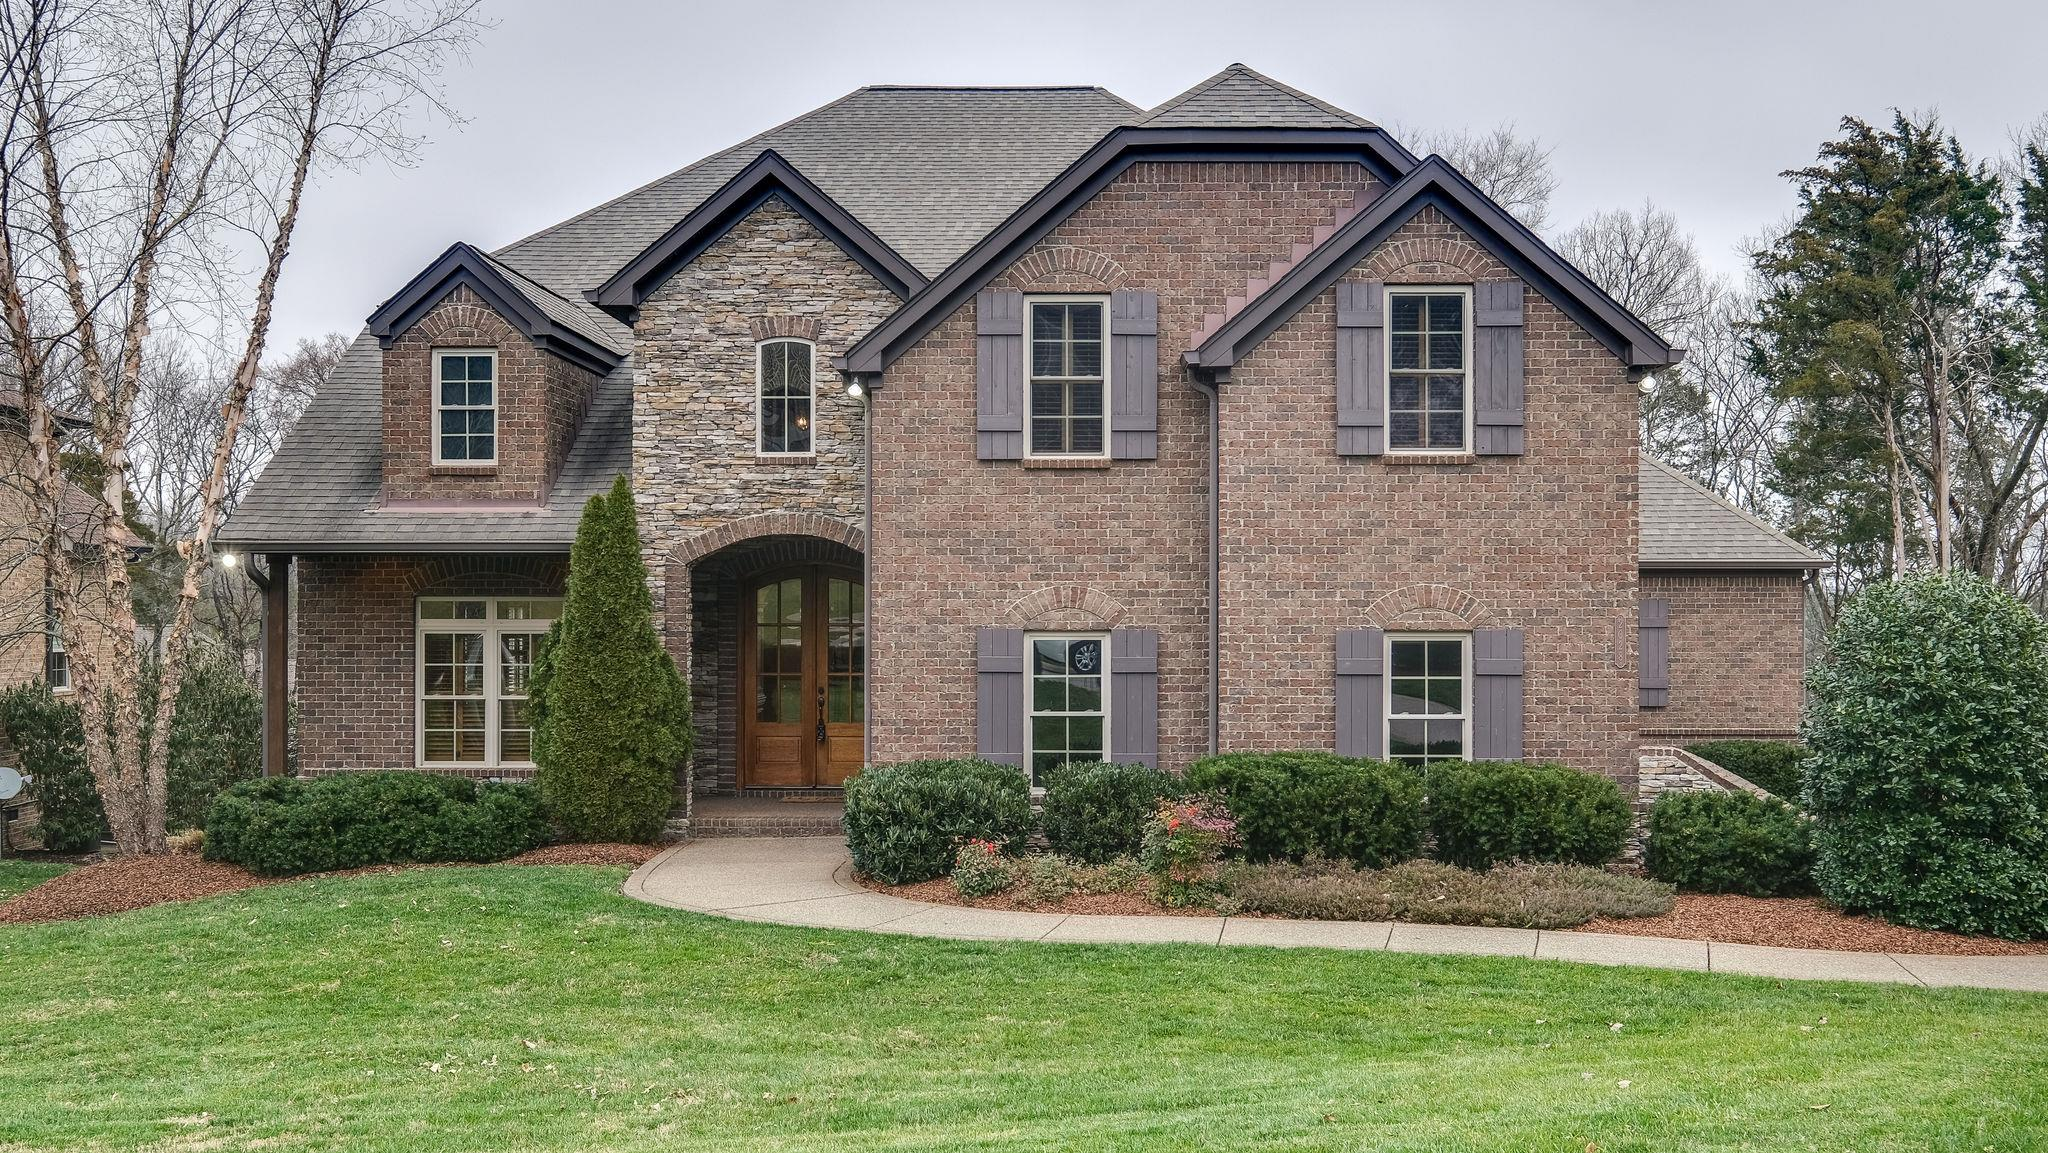 2028 Clifton Johnston Ct, Nolensville, Tennessee